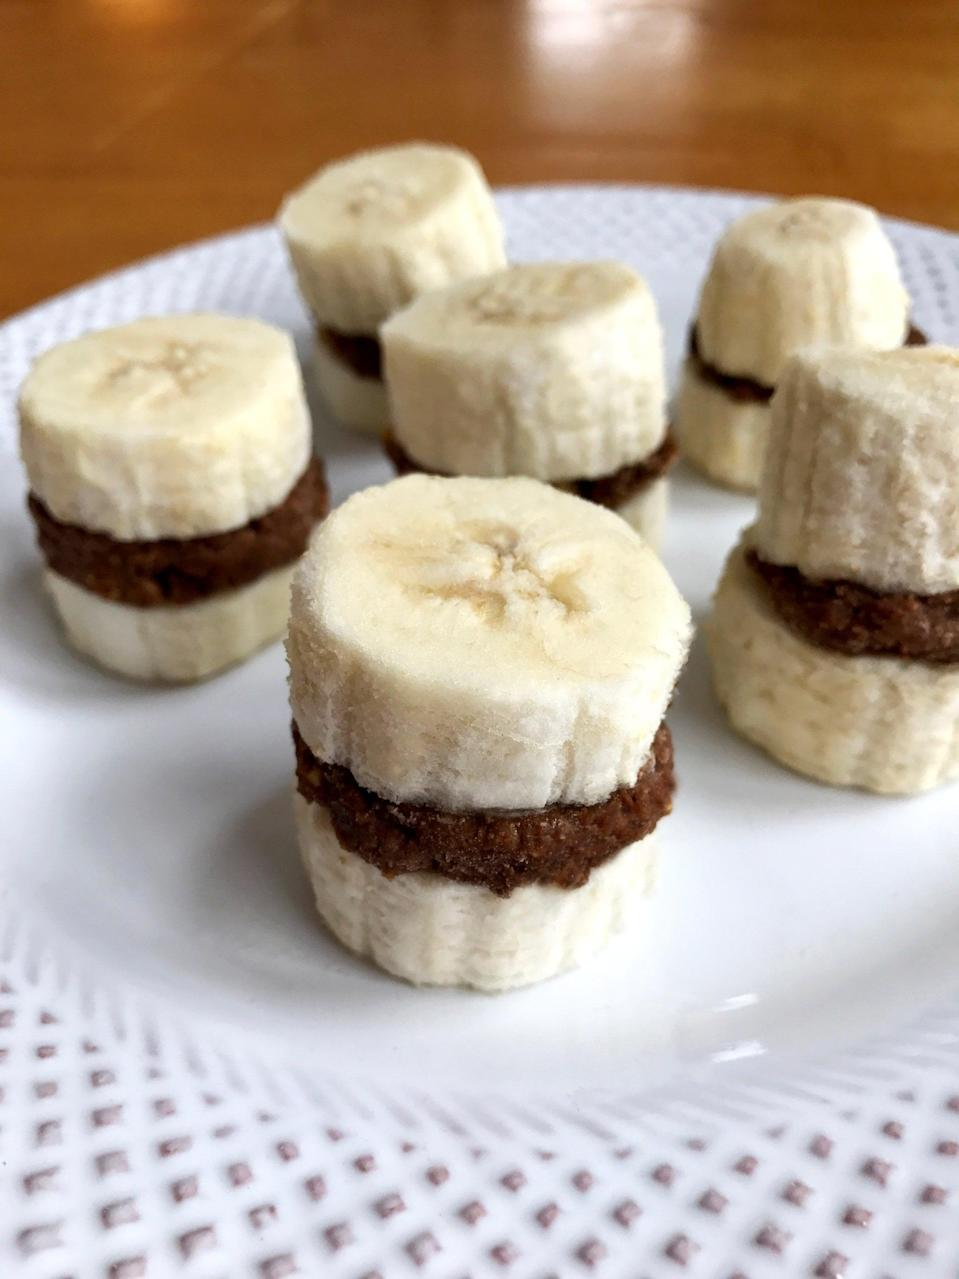 """<p>If you want something sweet that tastes like ice cream but is healthy, grab a banana and make these chocolate peanut butter banana nibblers.</p> <p><strong>Get the recipe:</strong> <a href=""""https://www.popsugar.com/fitness/Chocolate-Peanut-Butter-Banana-Snack-43158151"""" class=""""link rapid-noclick-resp"""" rel=""""nofollow noopener"""" target=""""_blank"""" data-ylk=""""slk:chocolate peanut butter banana nibblers"""">chocolate peanut butter banana nibblers</a></p>"""